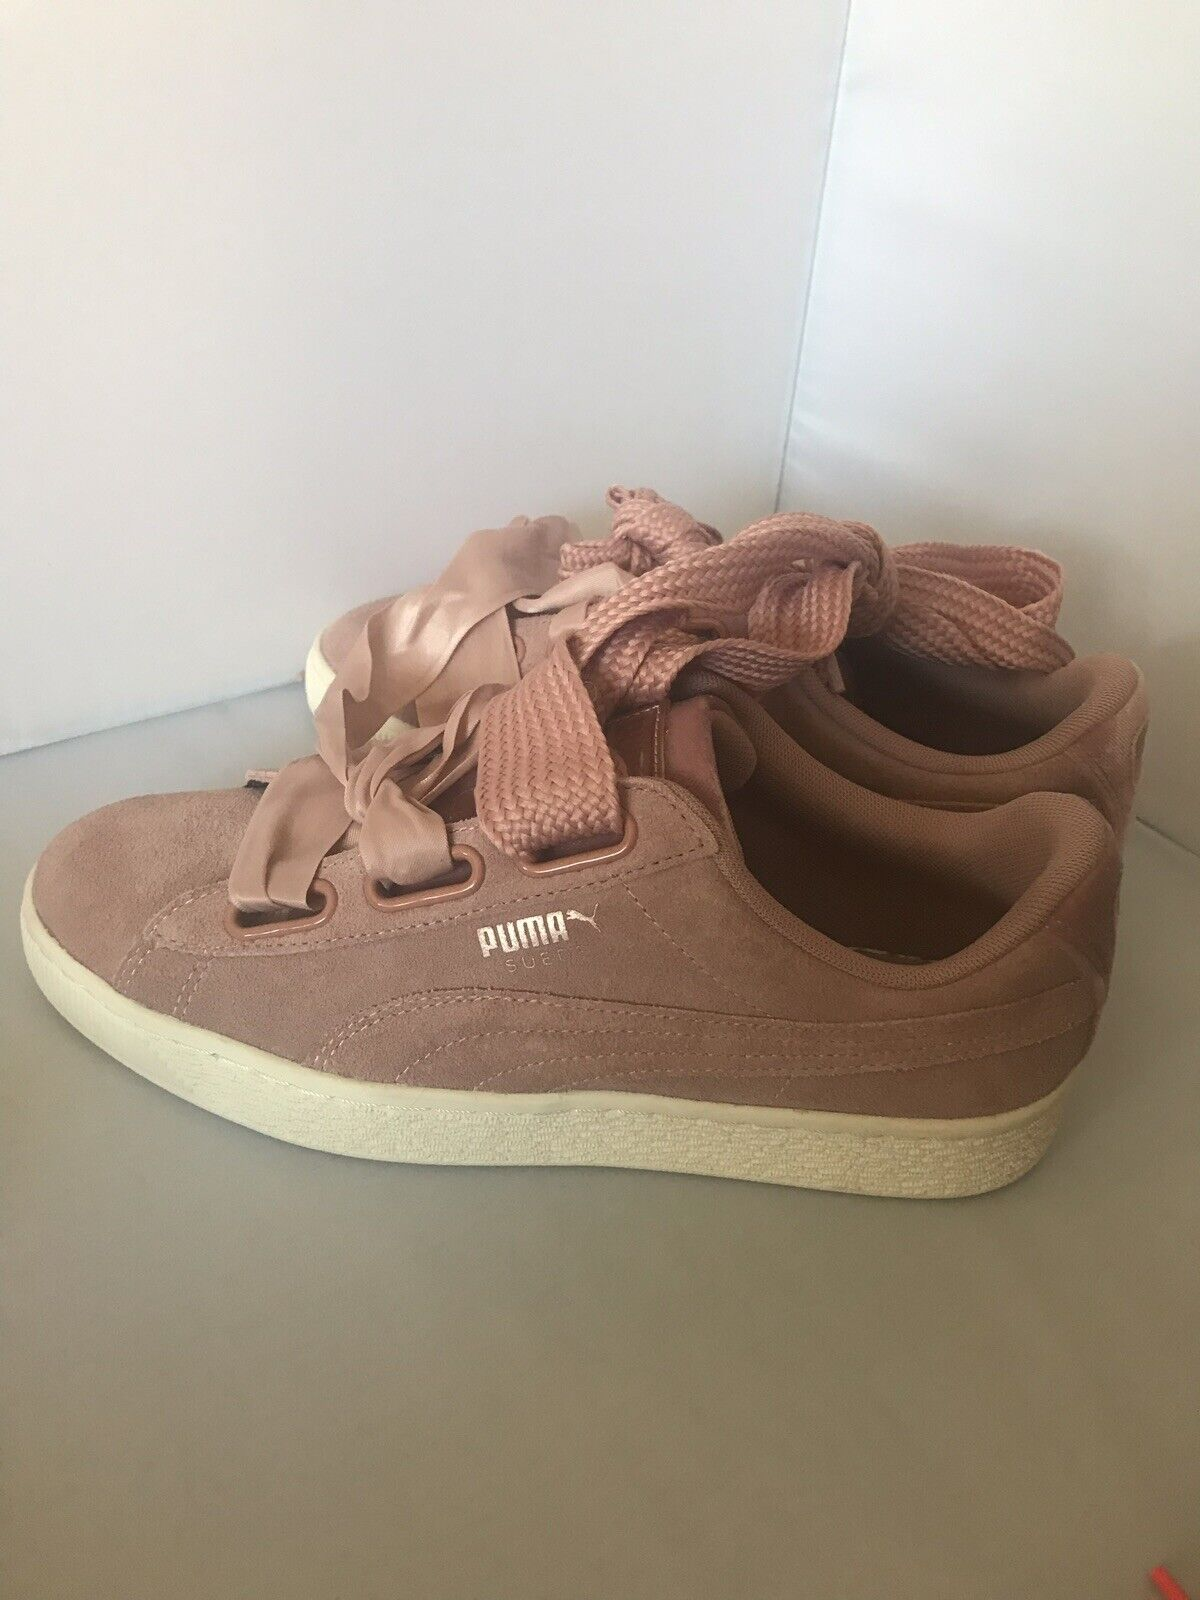 Puma Suede Heart Safari Womens Trainers Lace Up Pink pink gold Leather Size 9